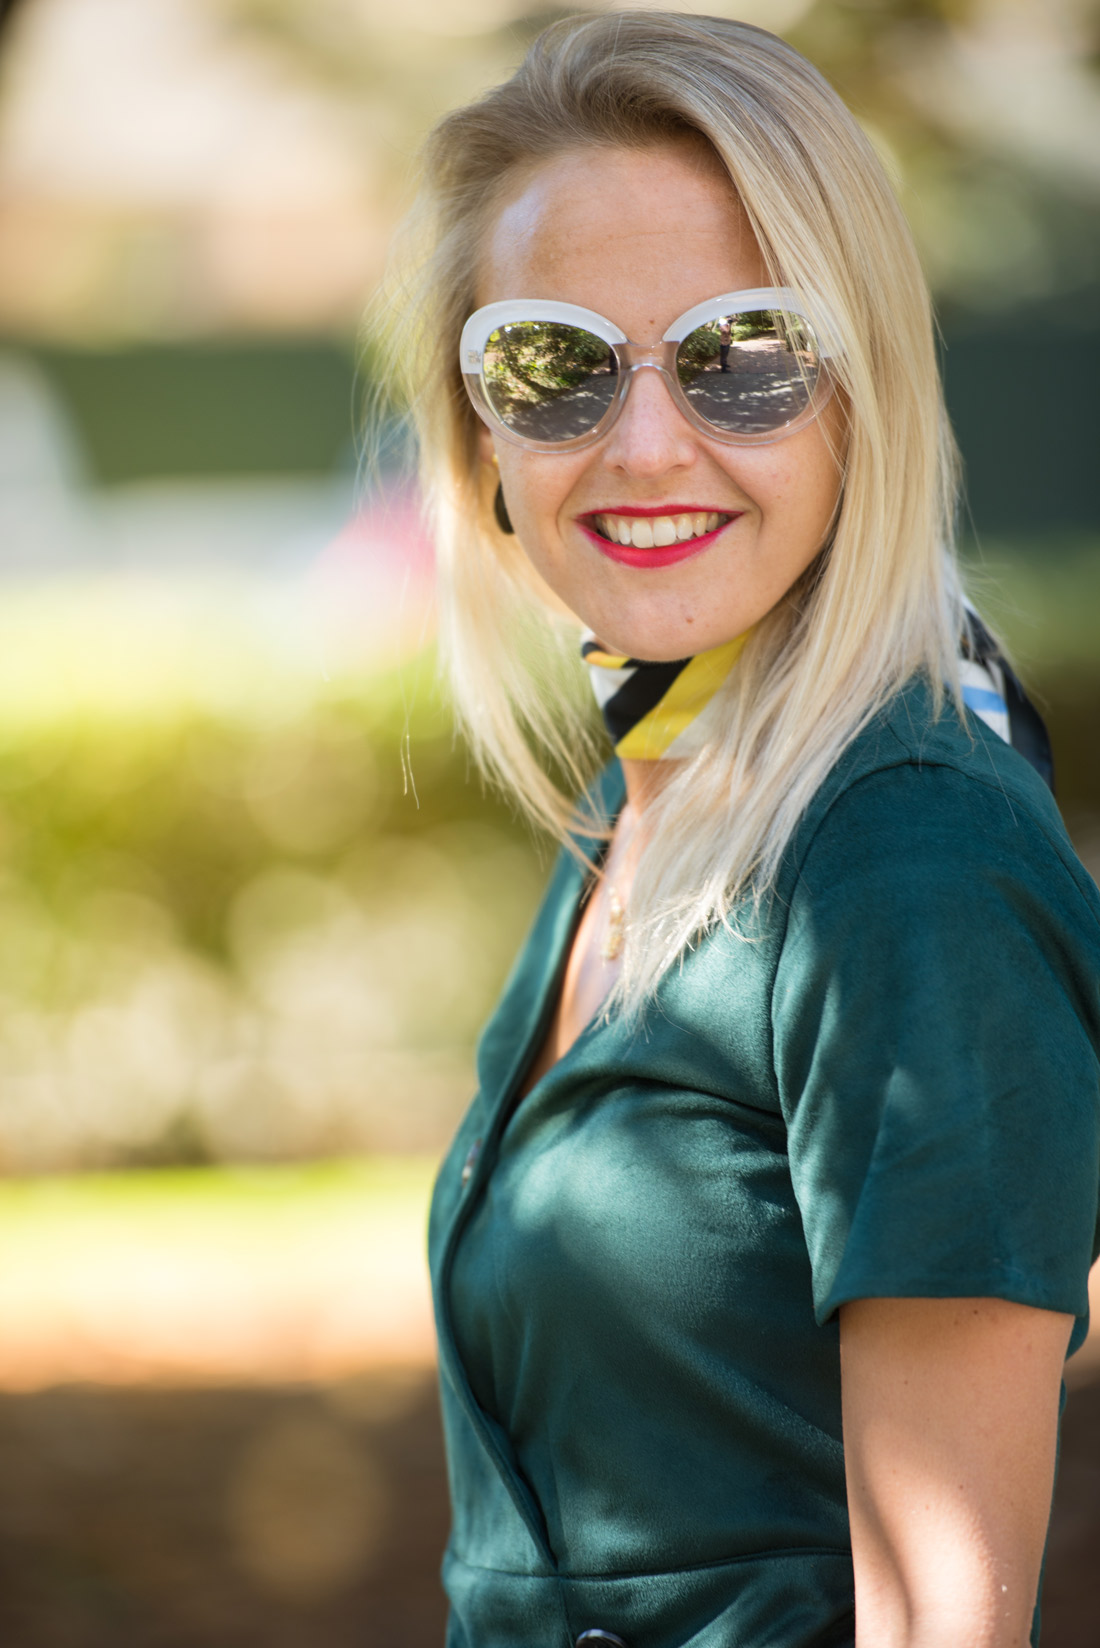 bag-at-you-california-blog-street-style-outfit